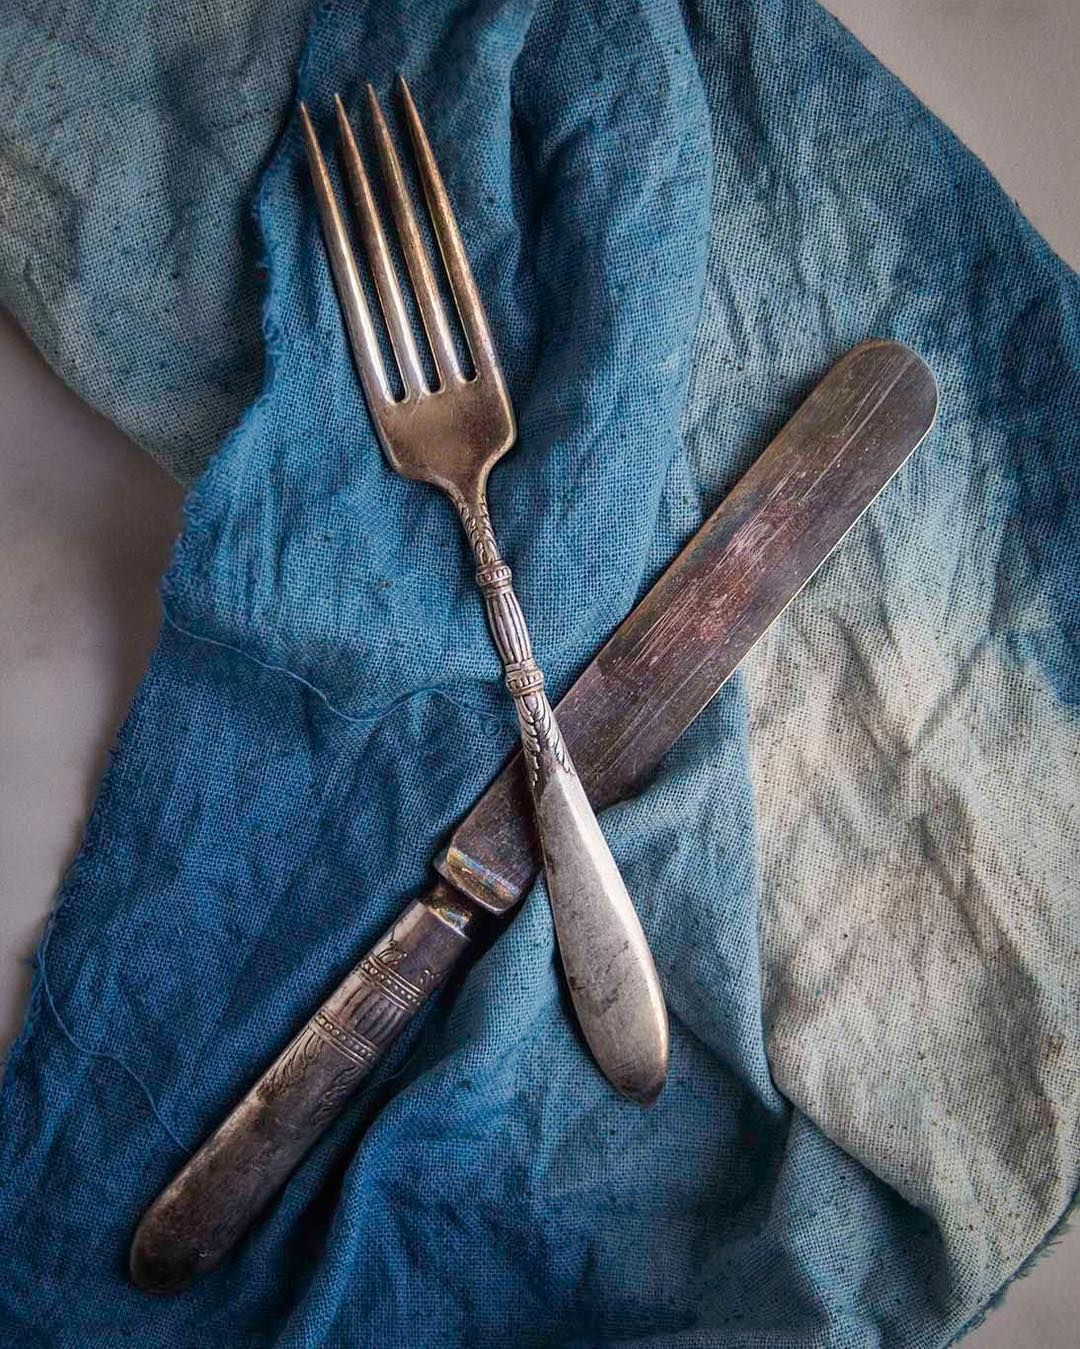 I not so recently purchased this gorgeous vintage silverware set in Benicia CA. Shout out to the owner who gave me 60% off because she saw that I absolutely fell in love with this. They will be used well! #silverware #vintage #thriftshopping #goodfind #photography #stilllife #foodphotography